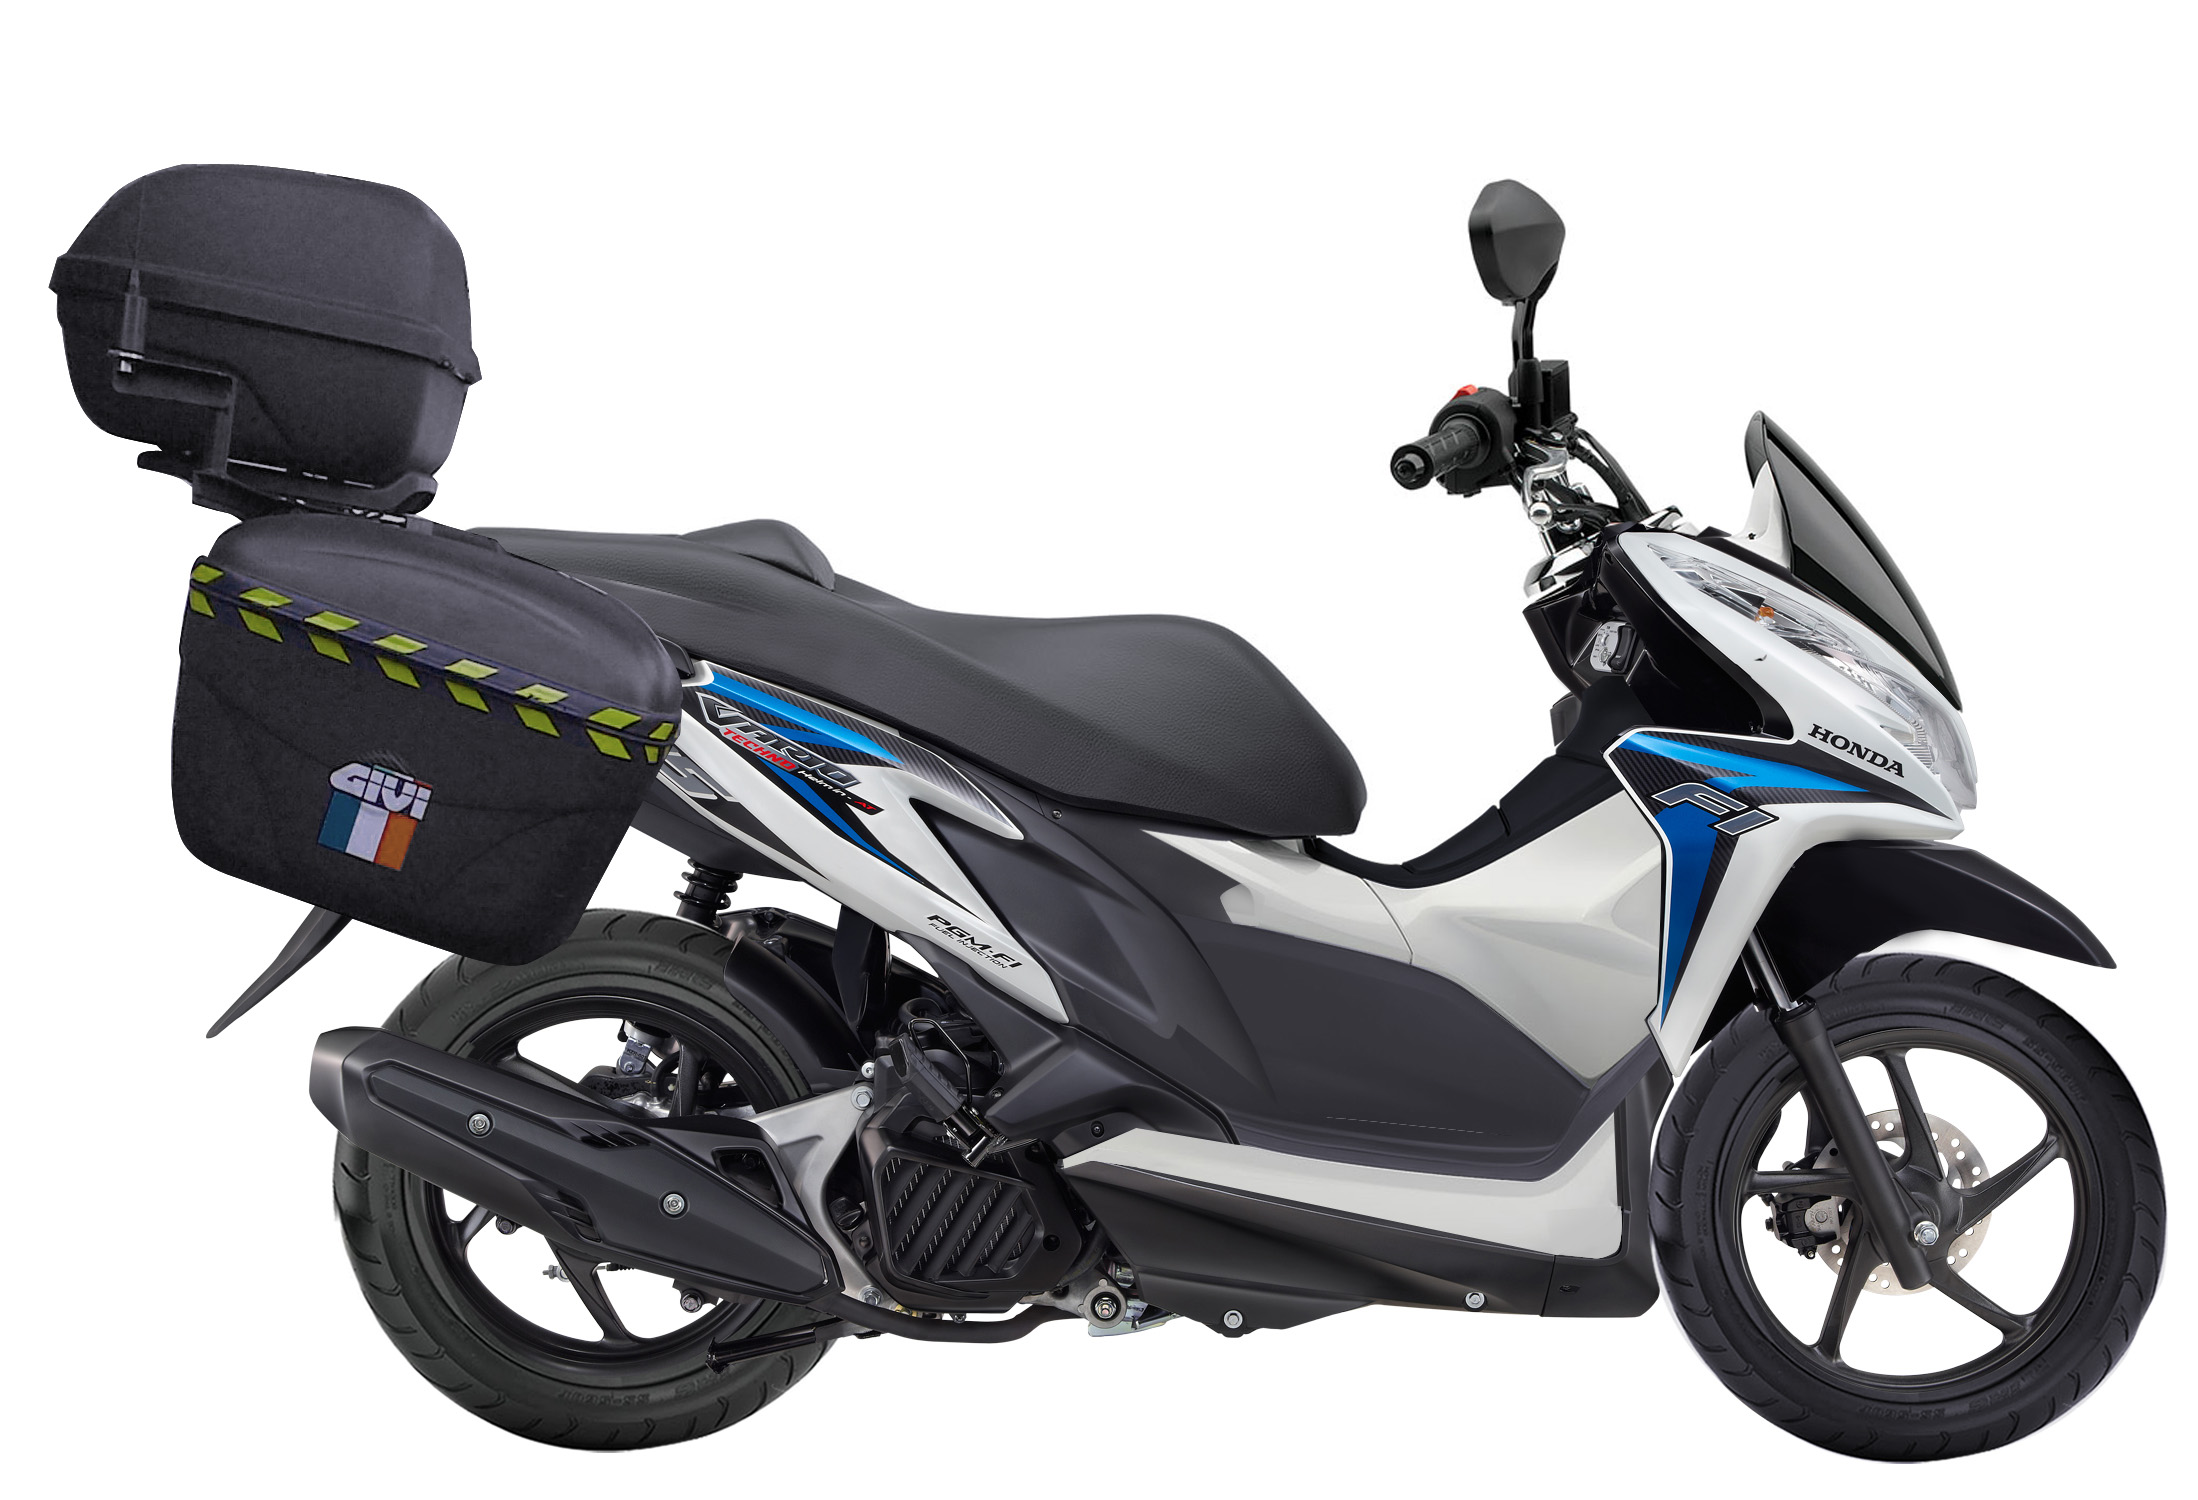 Modif Vario 125 CBS untuk Touring model PCX – Fushion model!!